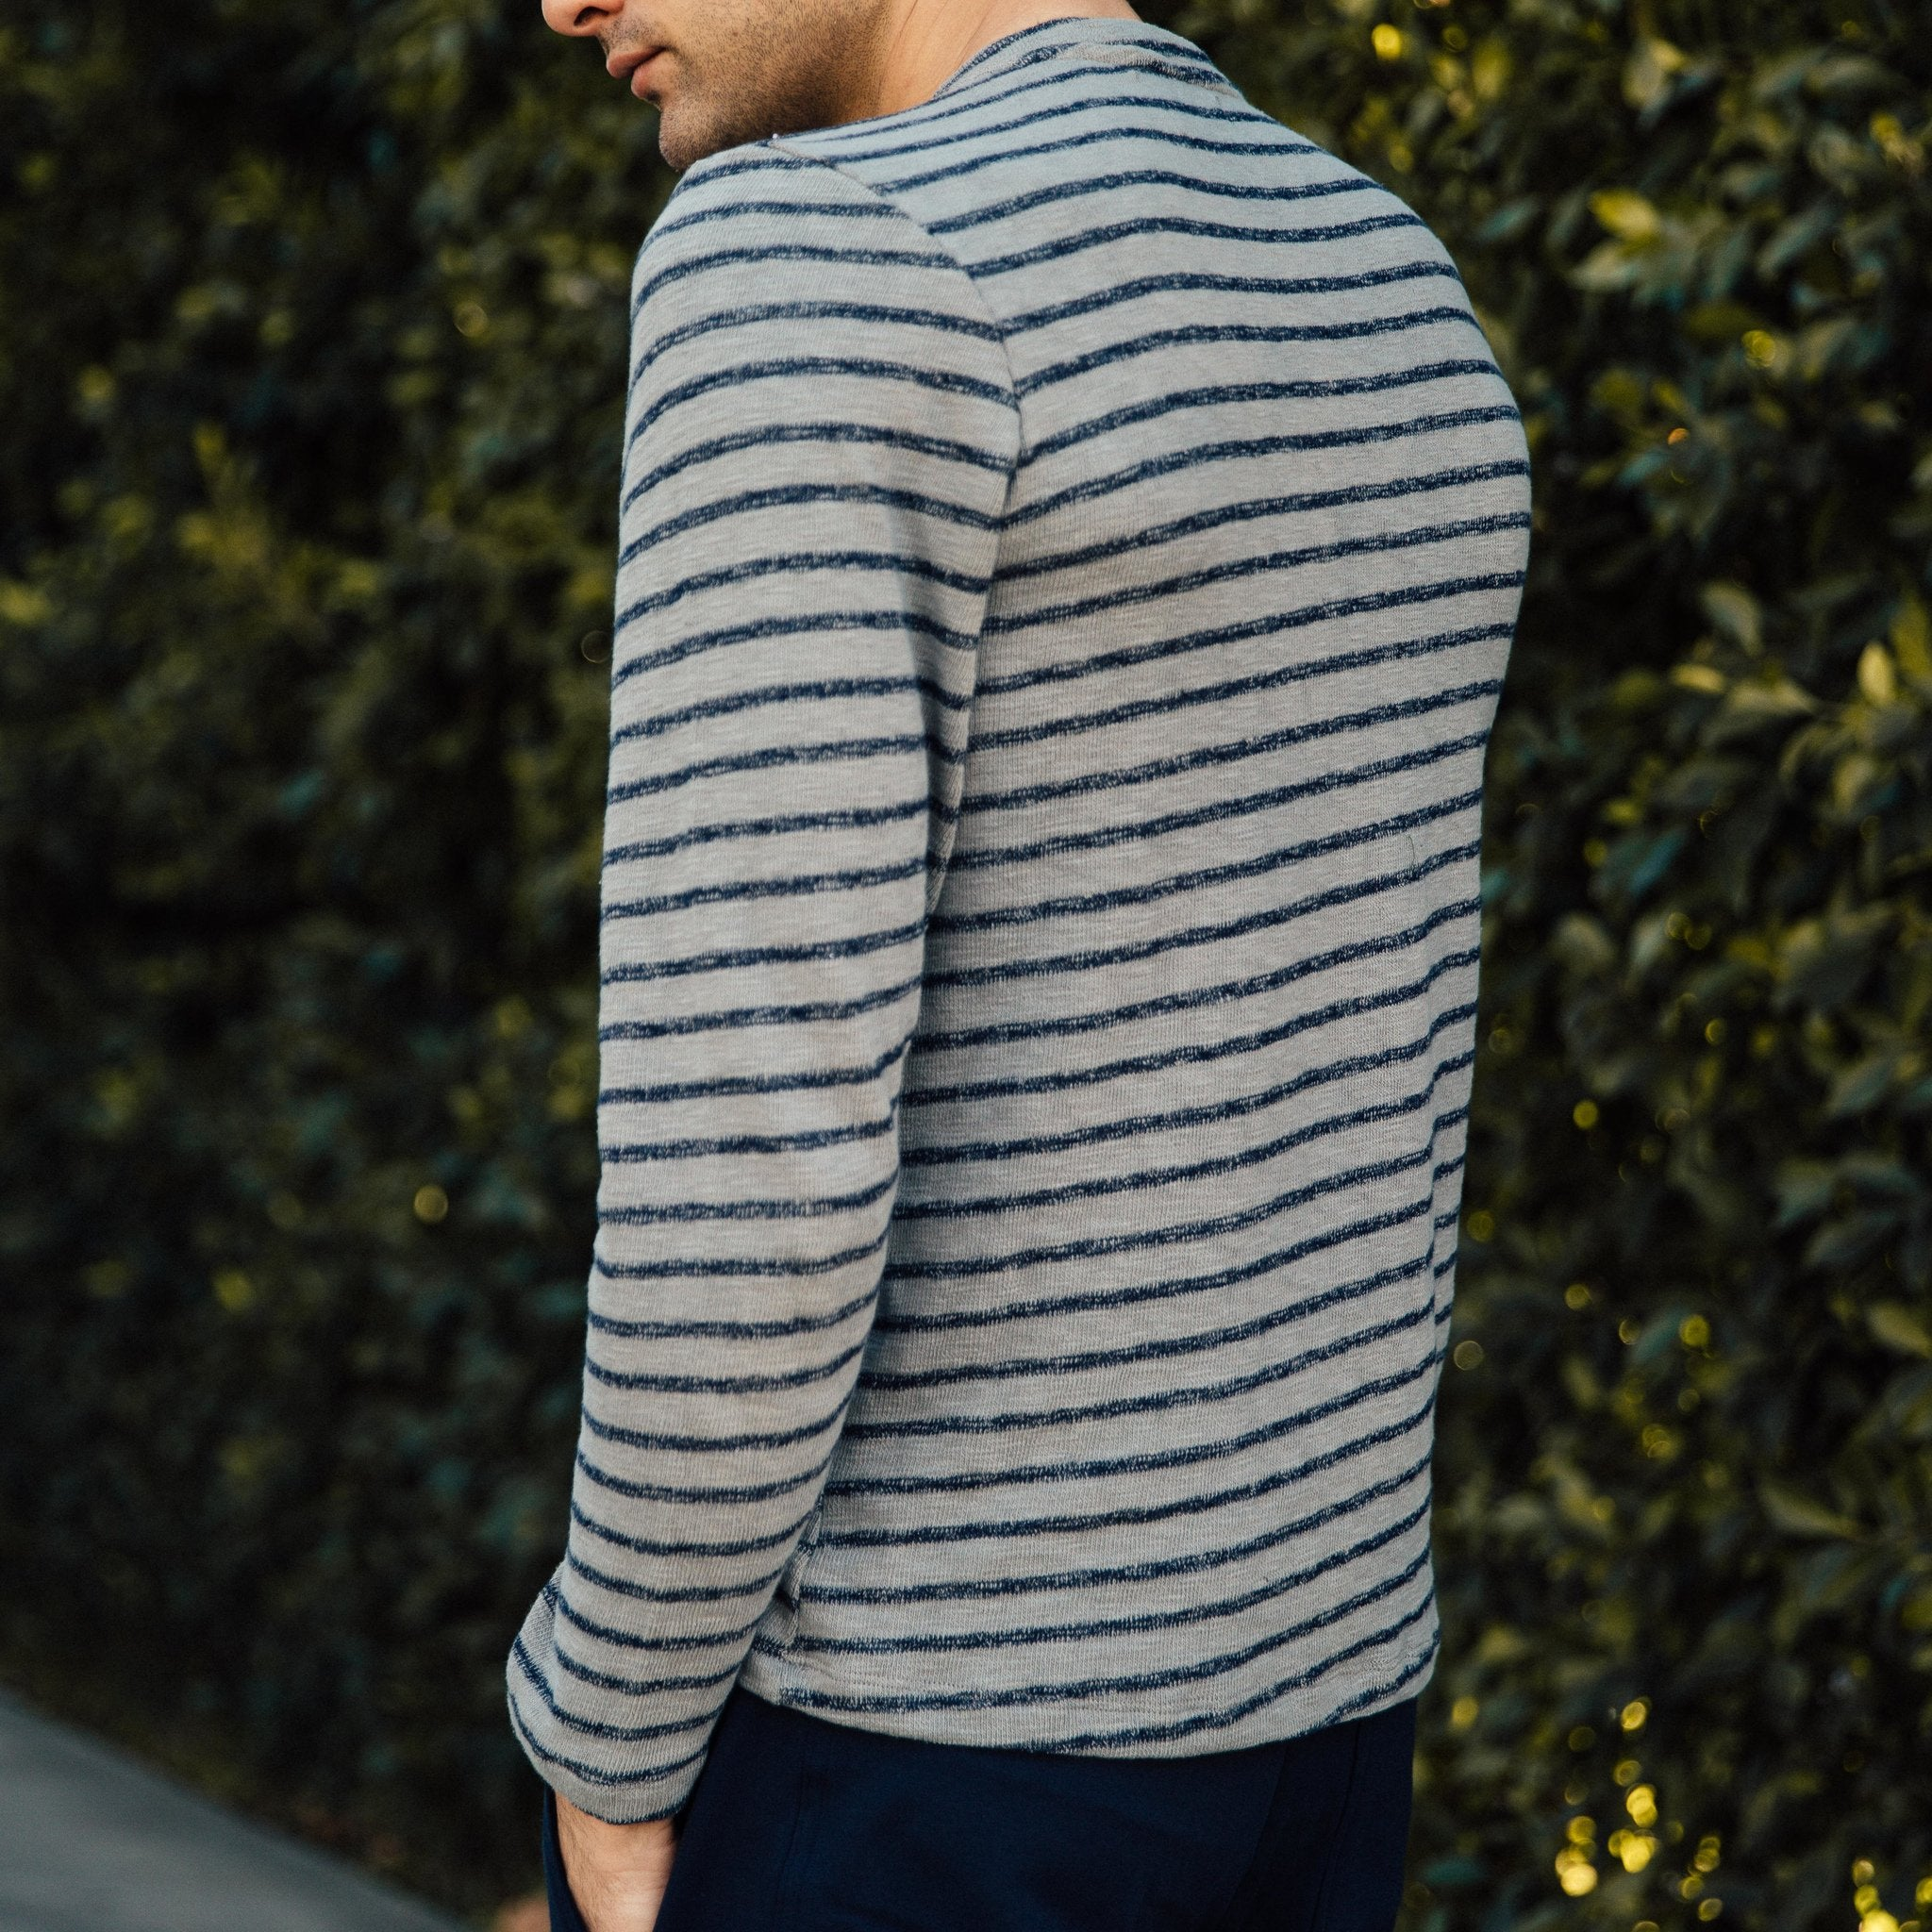 This grey Mitchell Evan wardrobe staple, crafted using a thread combination that gets softer with wear maintains its comfortable shape. Design centric yet playful, think of this striped sweater as ideal for multiple seasons. From cool summer evenings to layered during colder winter months, its versatility makes for a smart aesthetic slow-fashion choice. 88% Cotton, 10% Poly, 2% Spandex. Hand or machine wash cold, lay flat to dry. Made in America, 100% in Los Angeles.